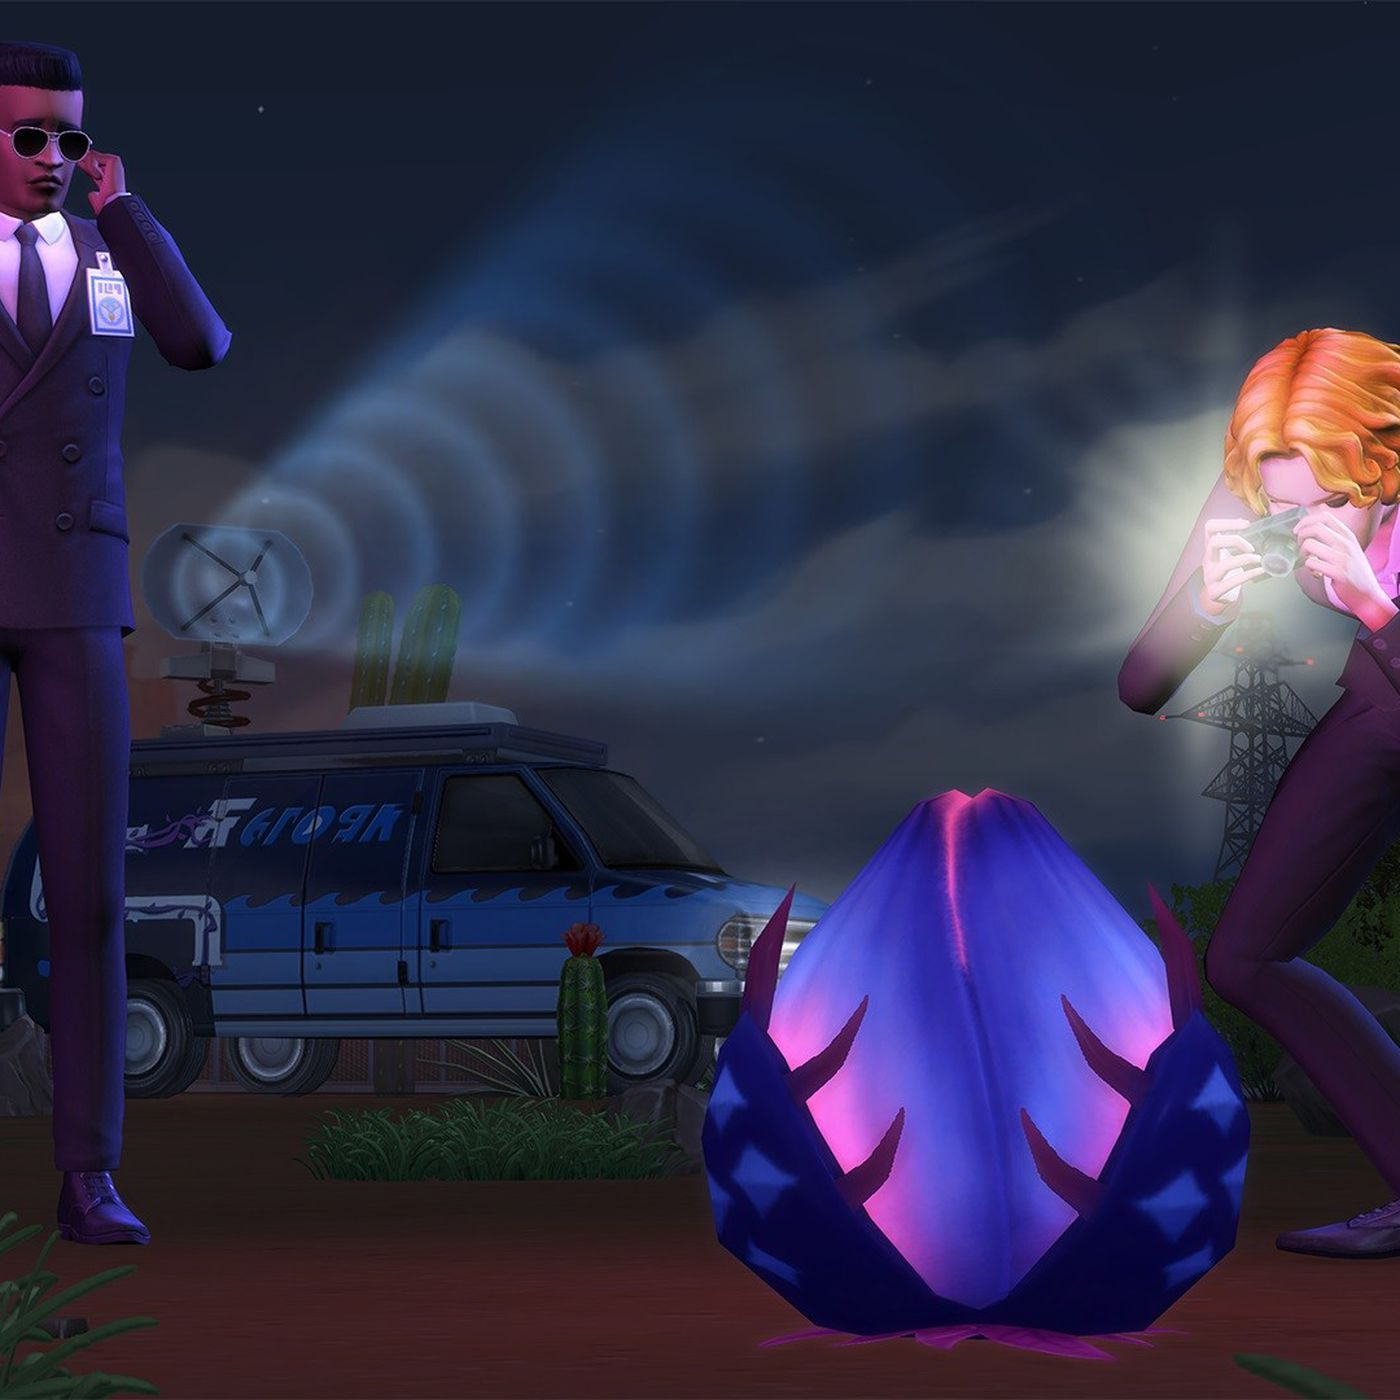 The Sims 4: StrangerVille game pack announced, coming Feb  26 - Polygon